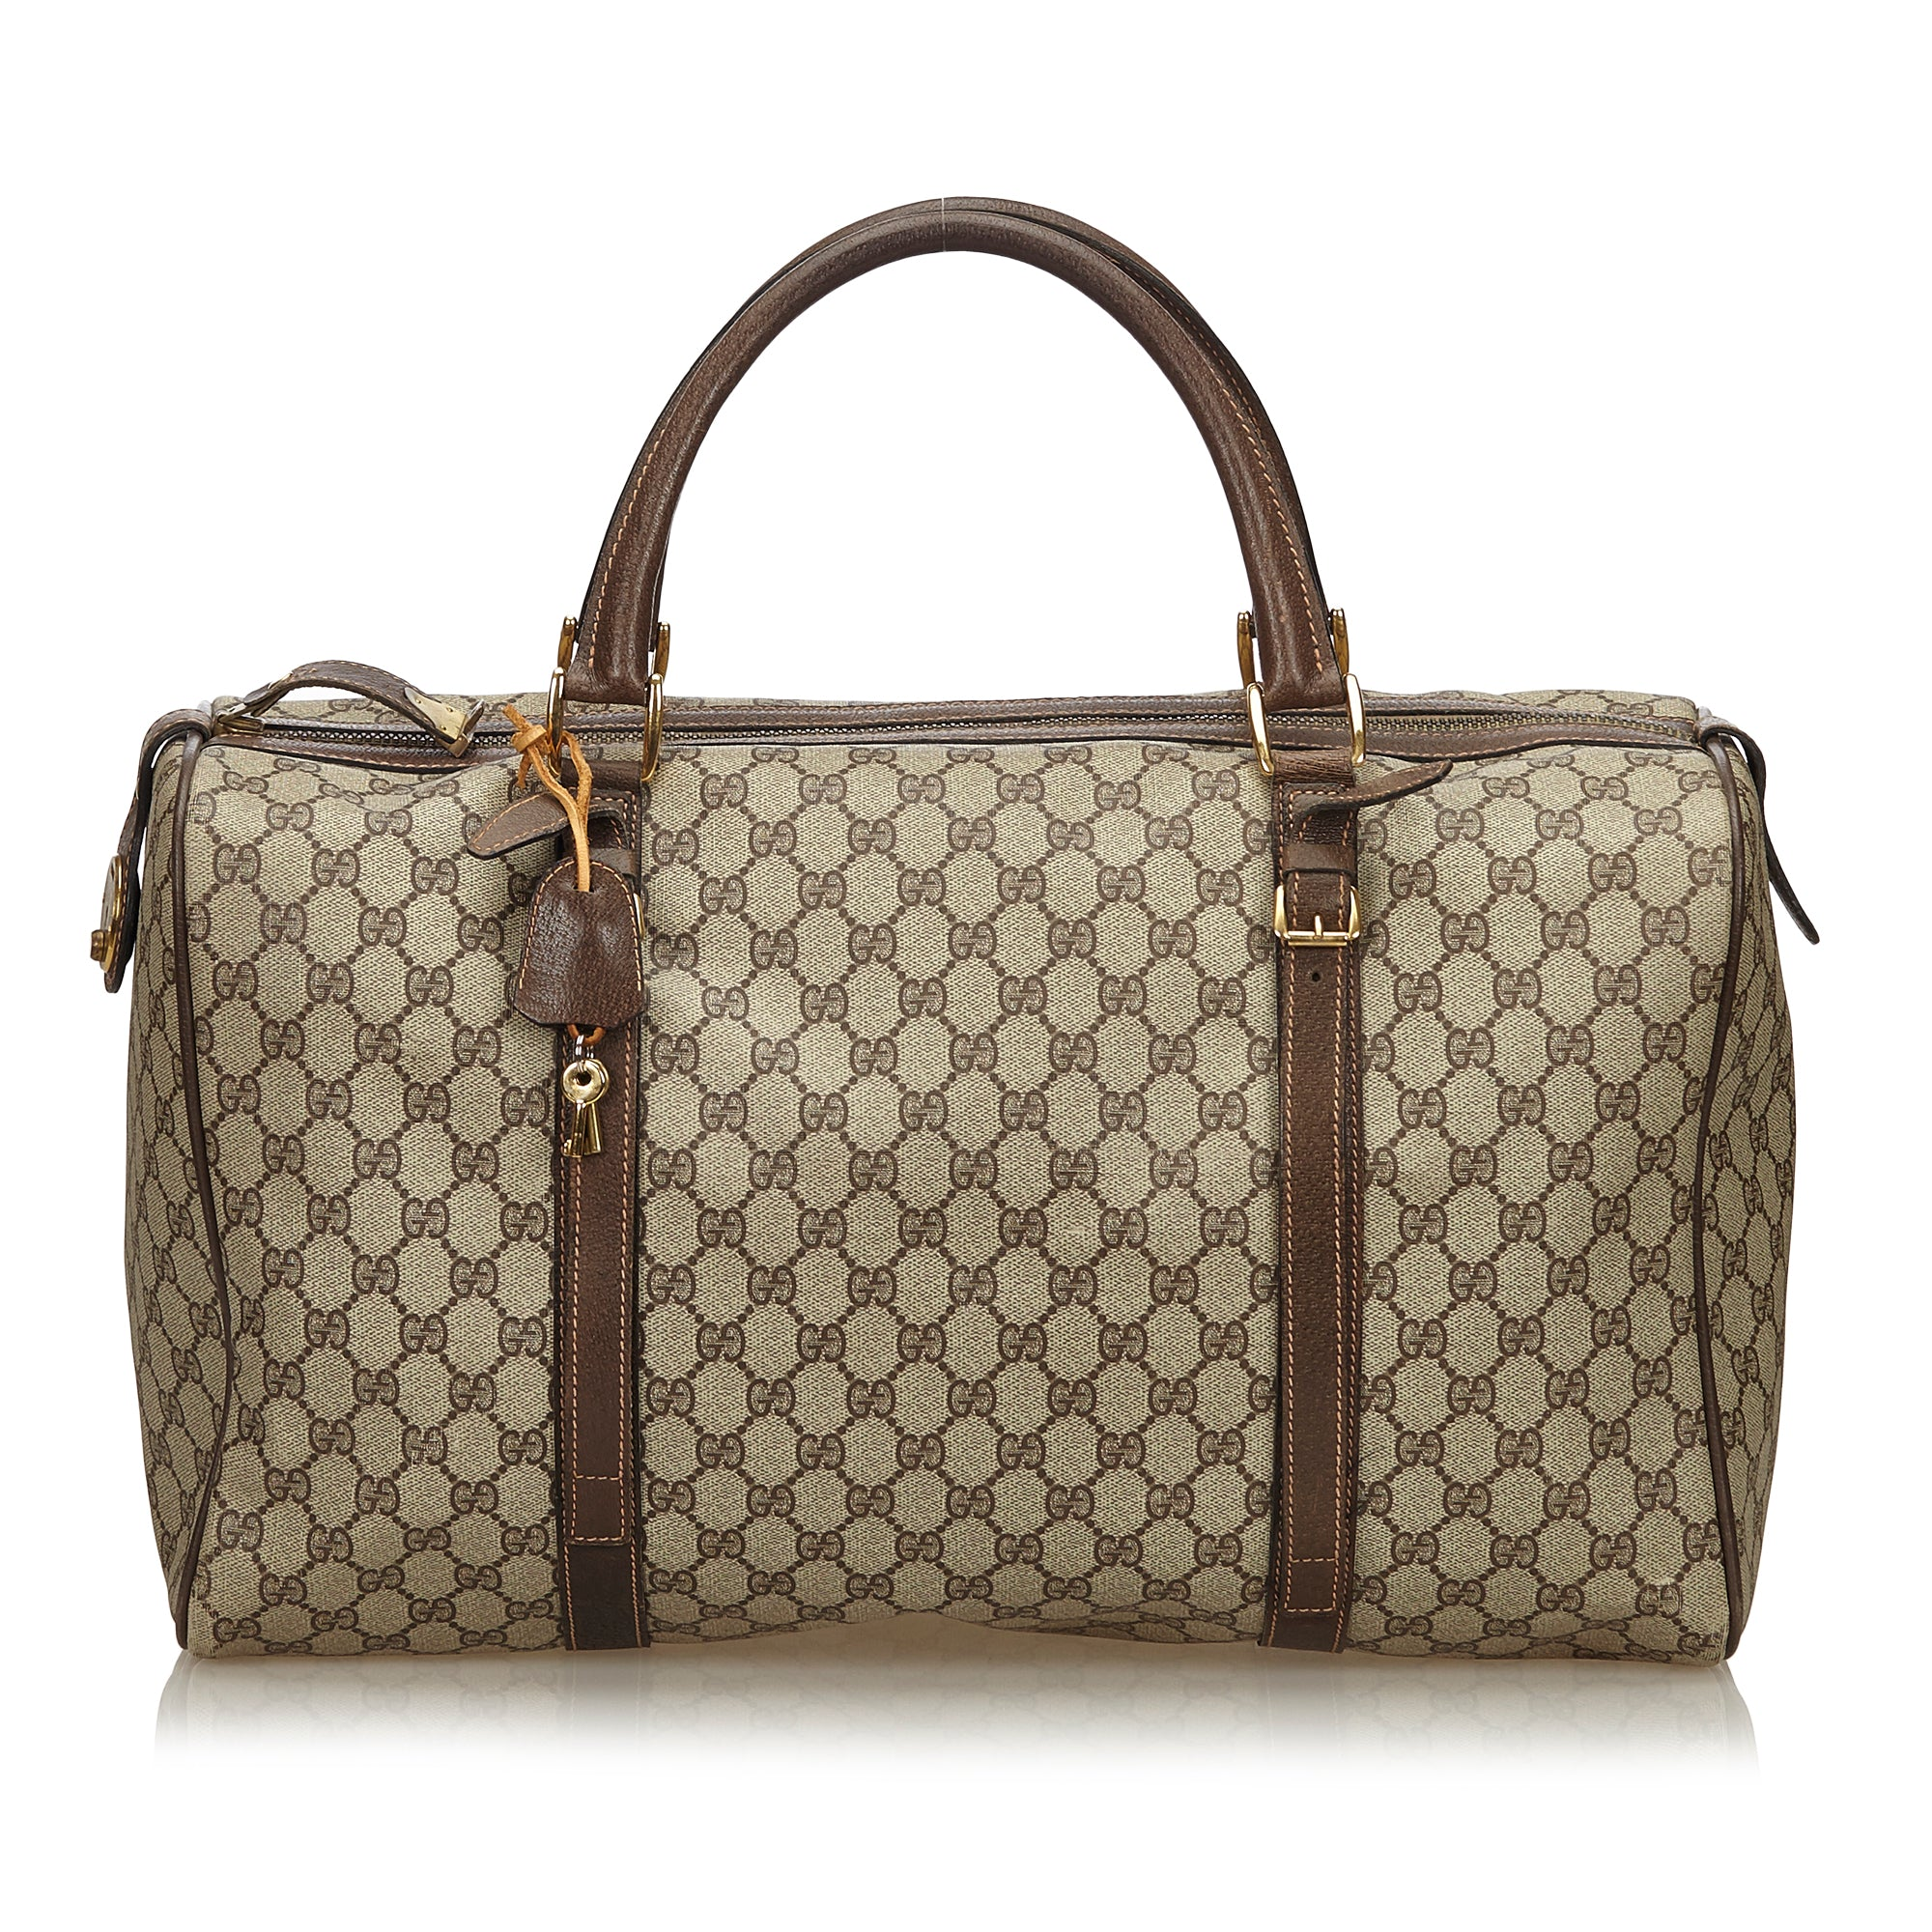 74dbe1e83082 GUCCI GG SUPREME WEEKENDER DUFFLE CARRY ON BAG Shop the best value on authentic  designer used ...